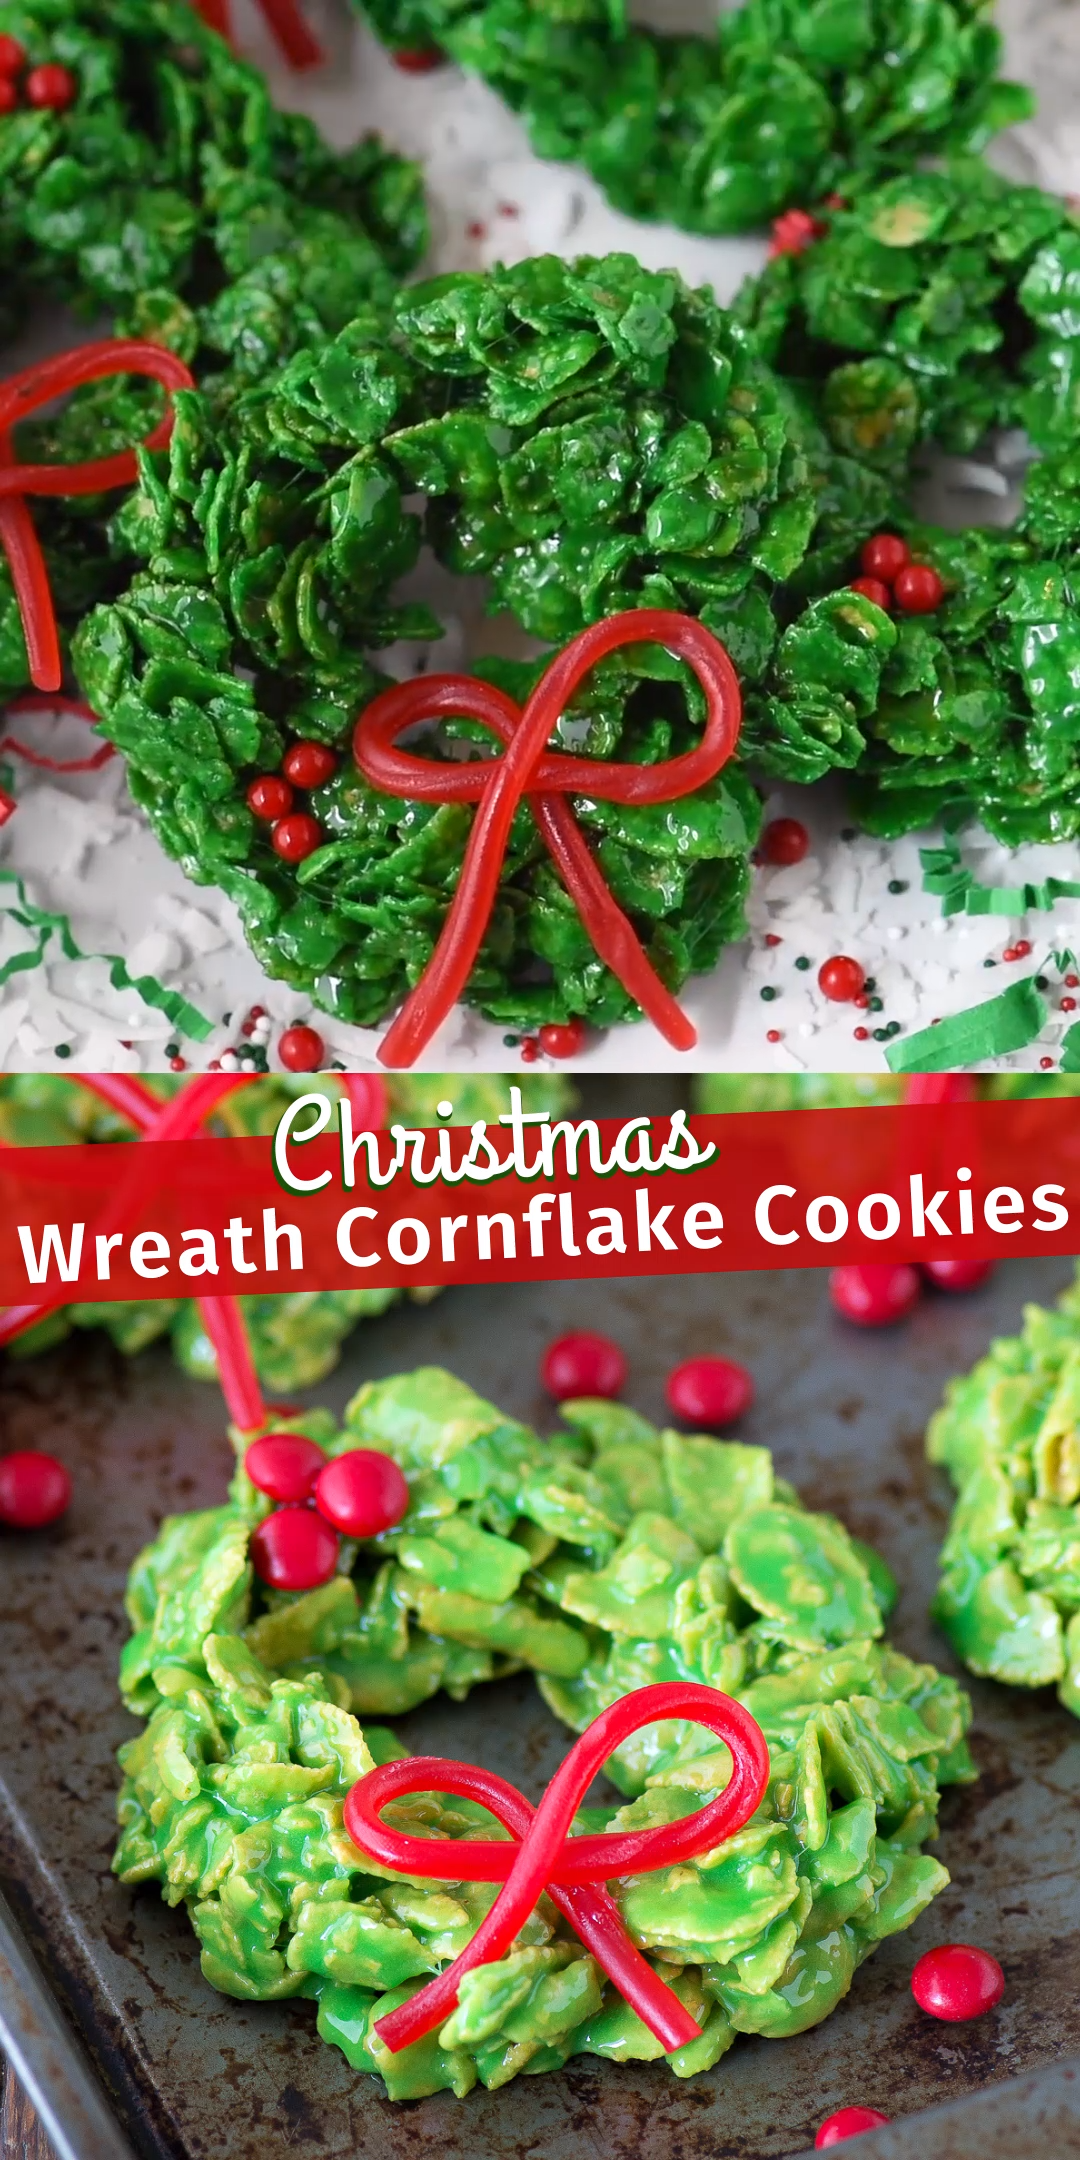 12 holiday Wreaths corn flakes ideas